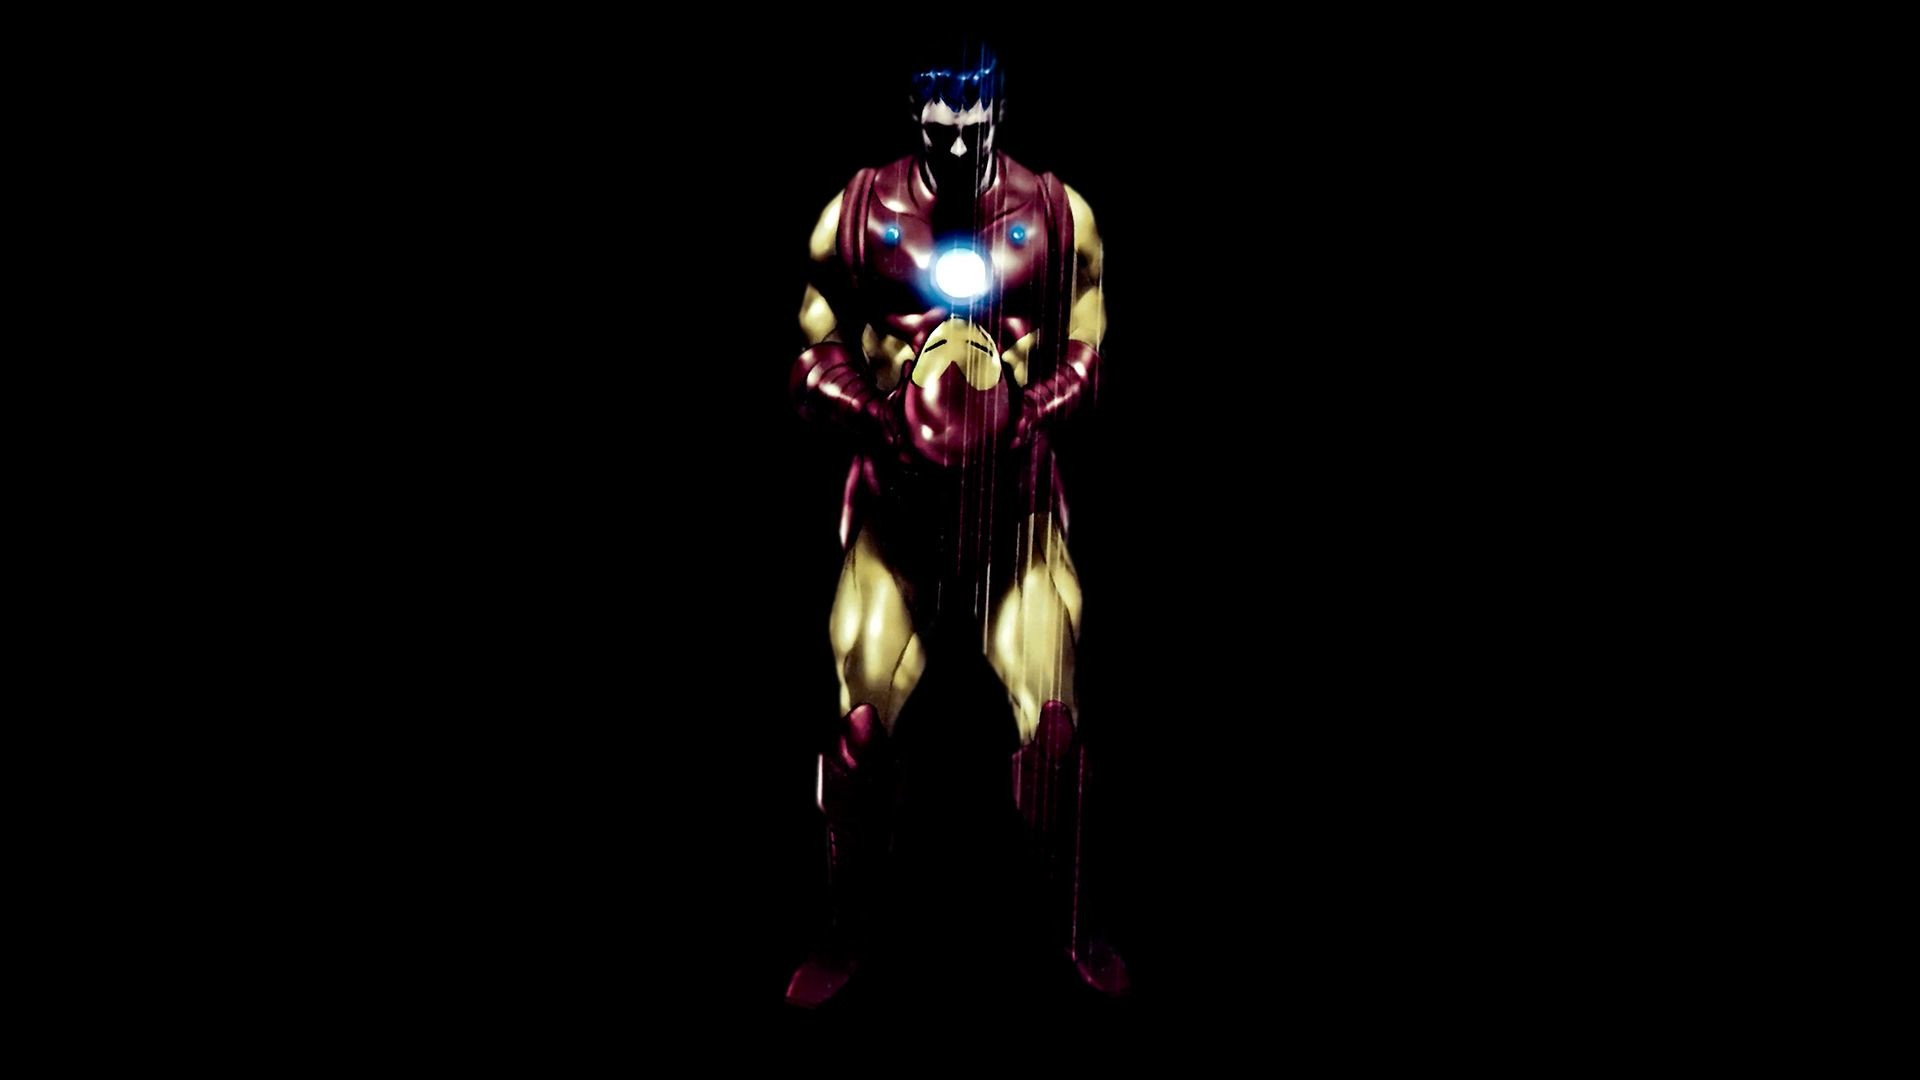 Iron Man Wallpaper For Iphone Se Wallpaper Desktop Hd